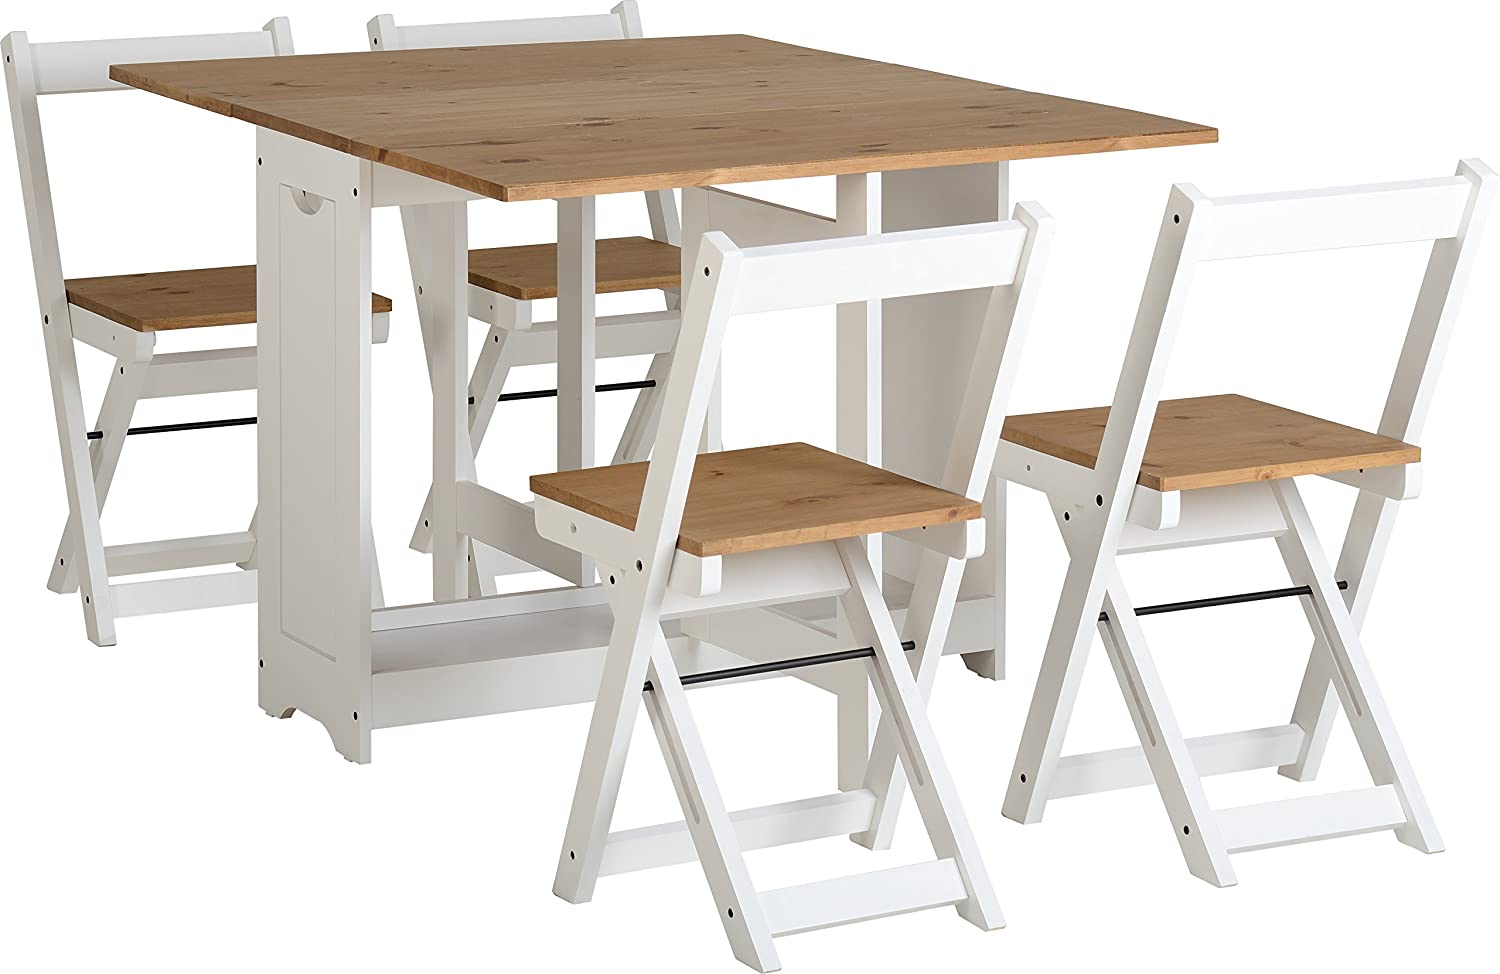 White Pine Butterfly Drop Leaf Foldaway Dining Set With 4 Foldaway Chairs Amazon Co Uk Kitchen Home